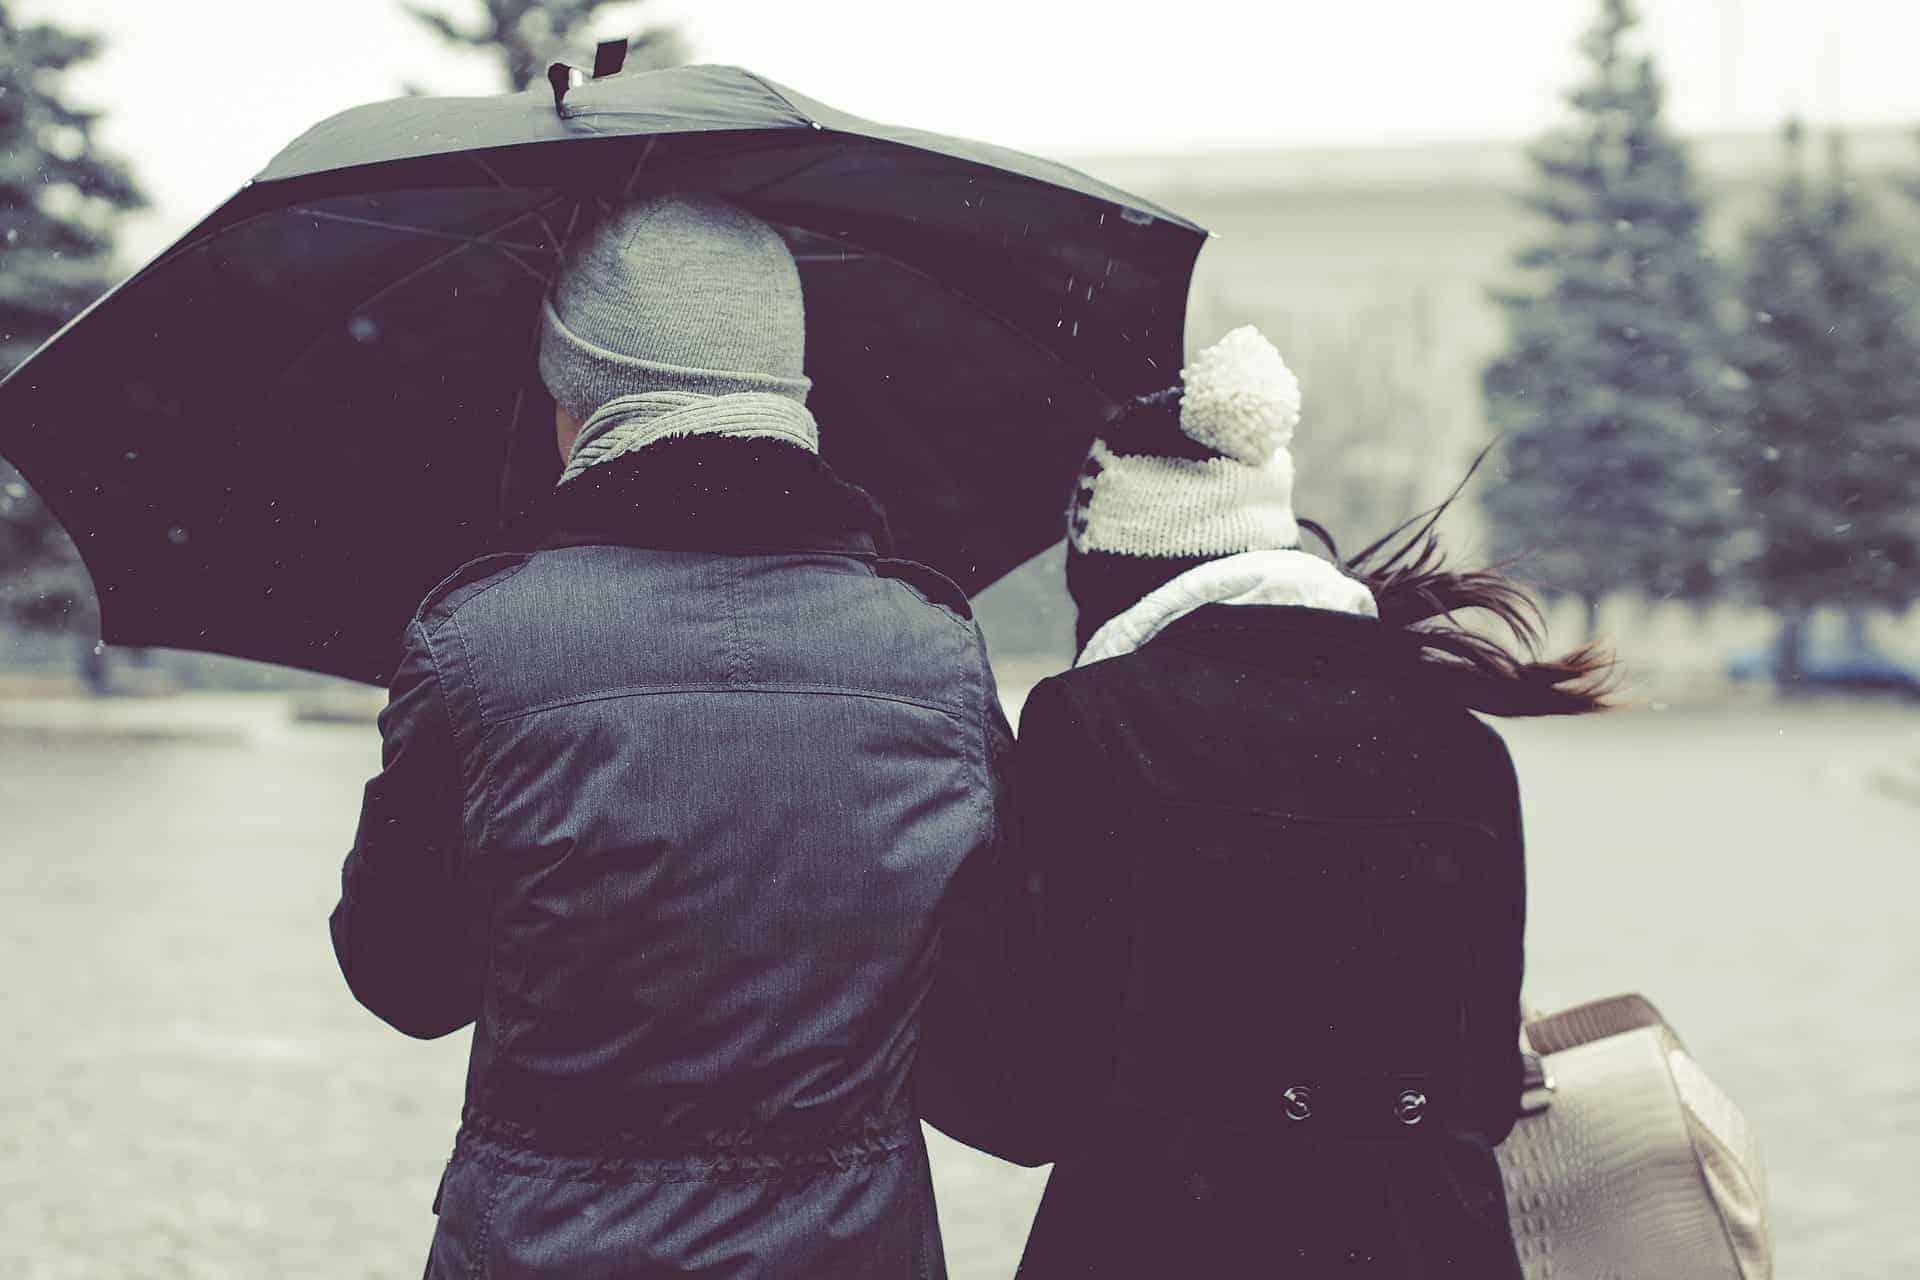 Are you looking for things to do with your partner that will bring you even closer together, whilst having fun? Read my 16 ideas for winter dates, holiday fun for couples, date nights and simple fun things to do at home. Christmas for couples - budget activities and ideas for the sporty active couples out there. #christmasgforcouples #firstchristmas #christmasdatenights #dateideas #winterdates